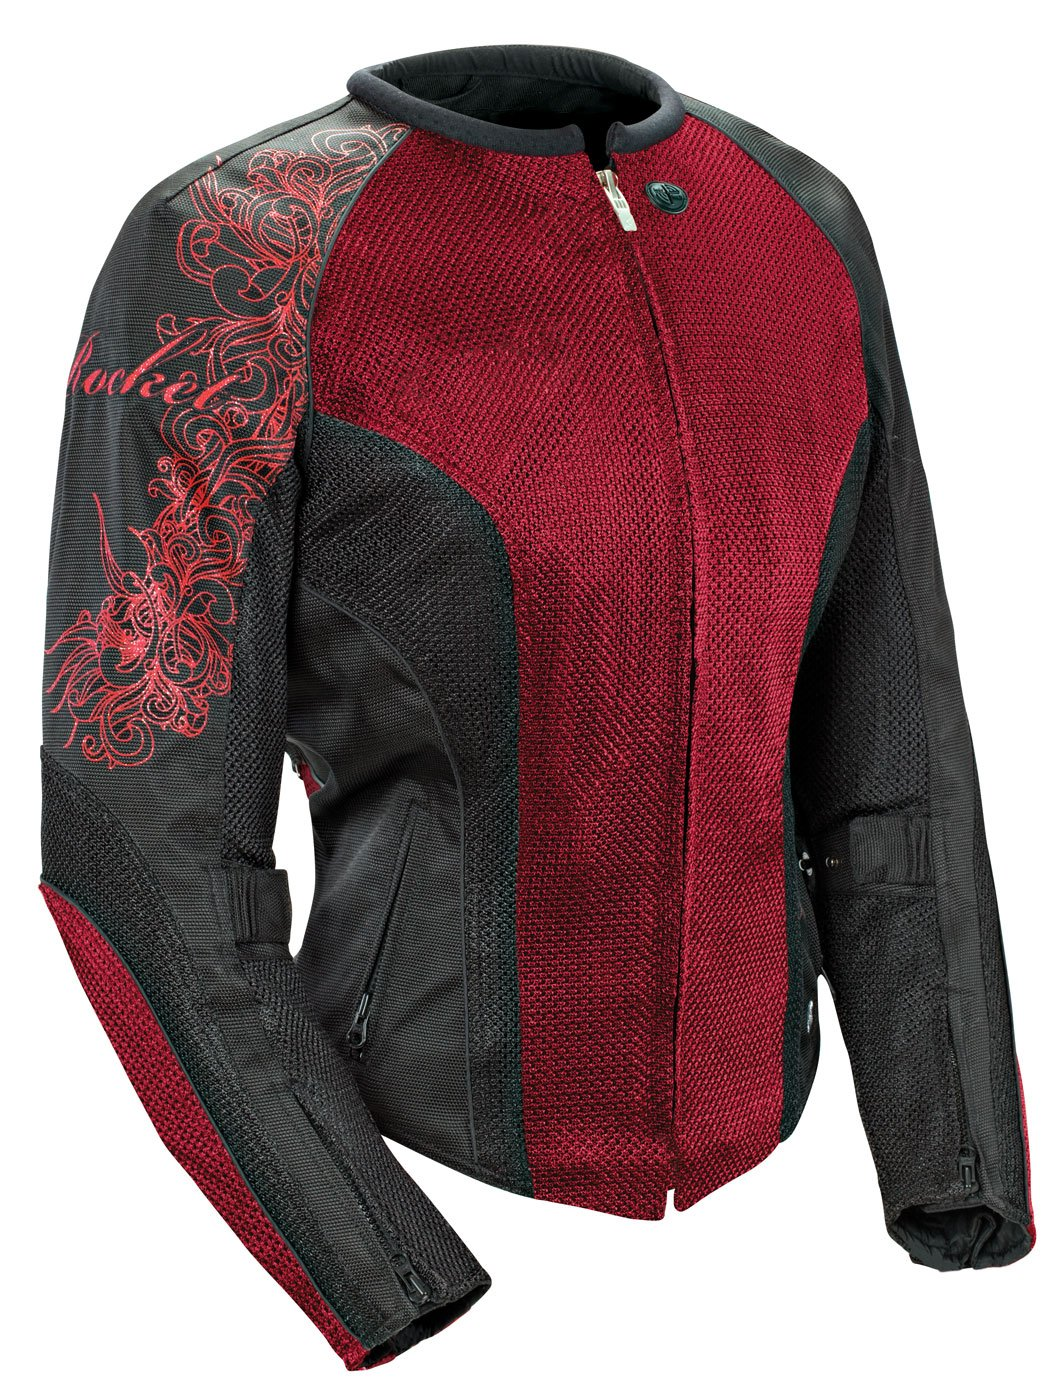 Joe Rocket Cleo 2.2 Women's Mesh Motorcycle Riding Jacket (Wine/Black/Black, X-Large)